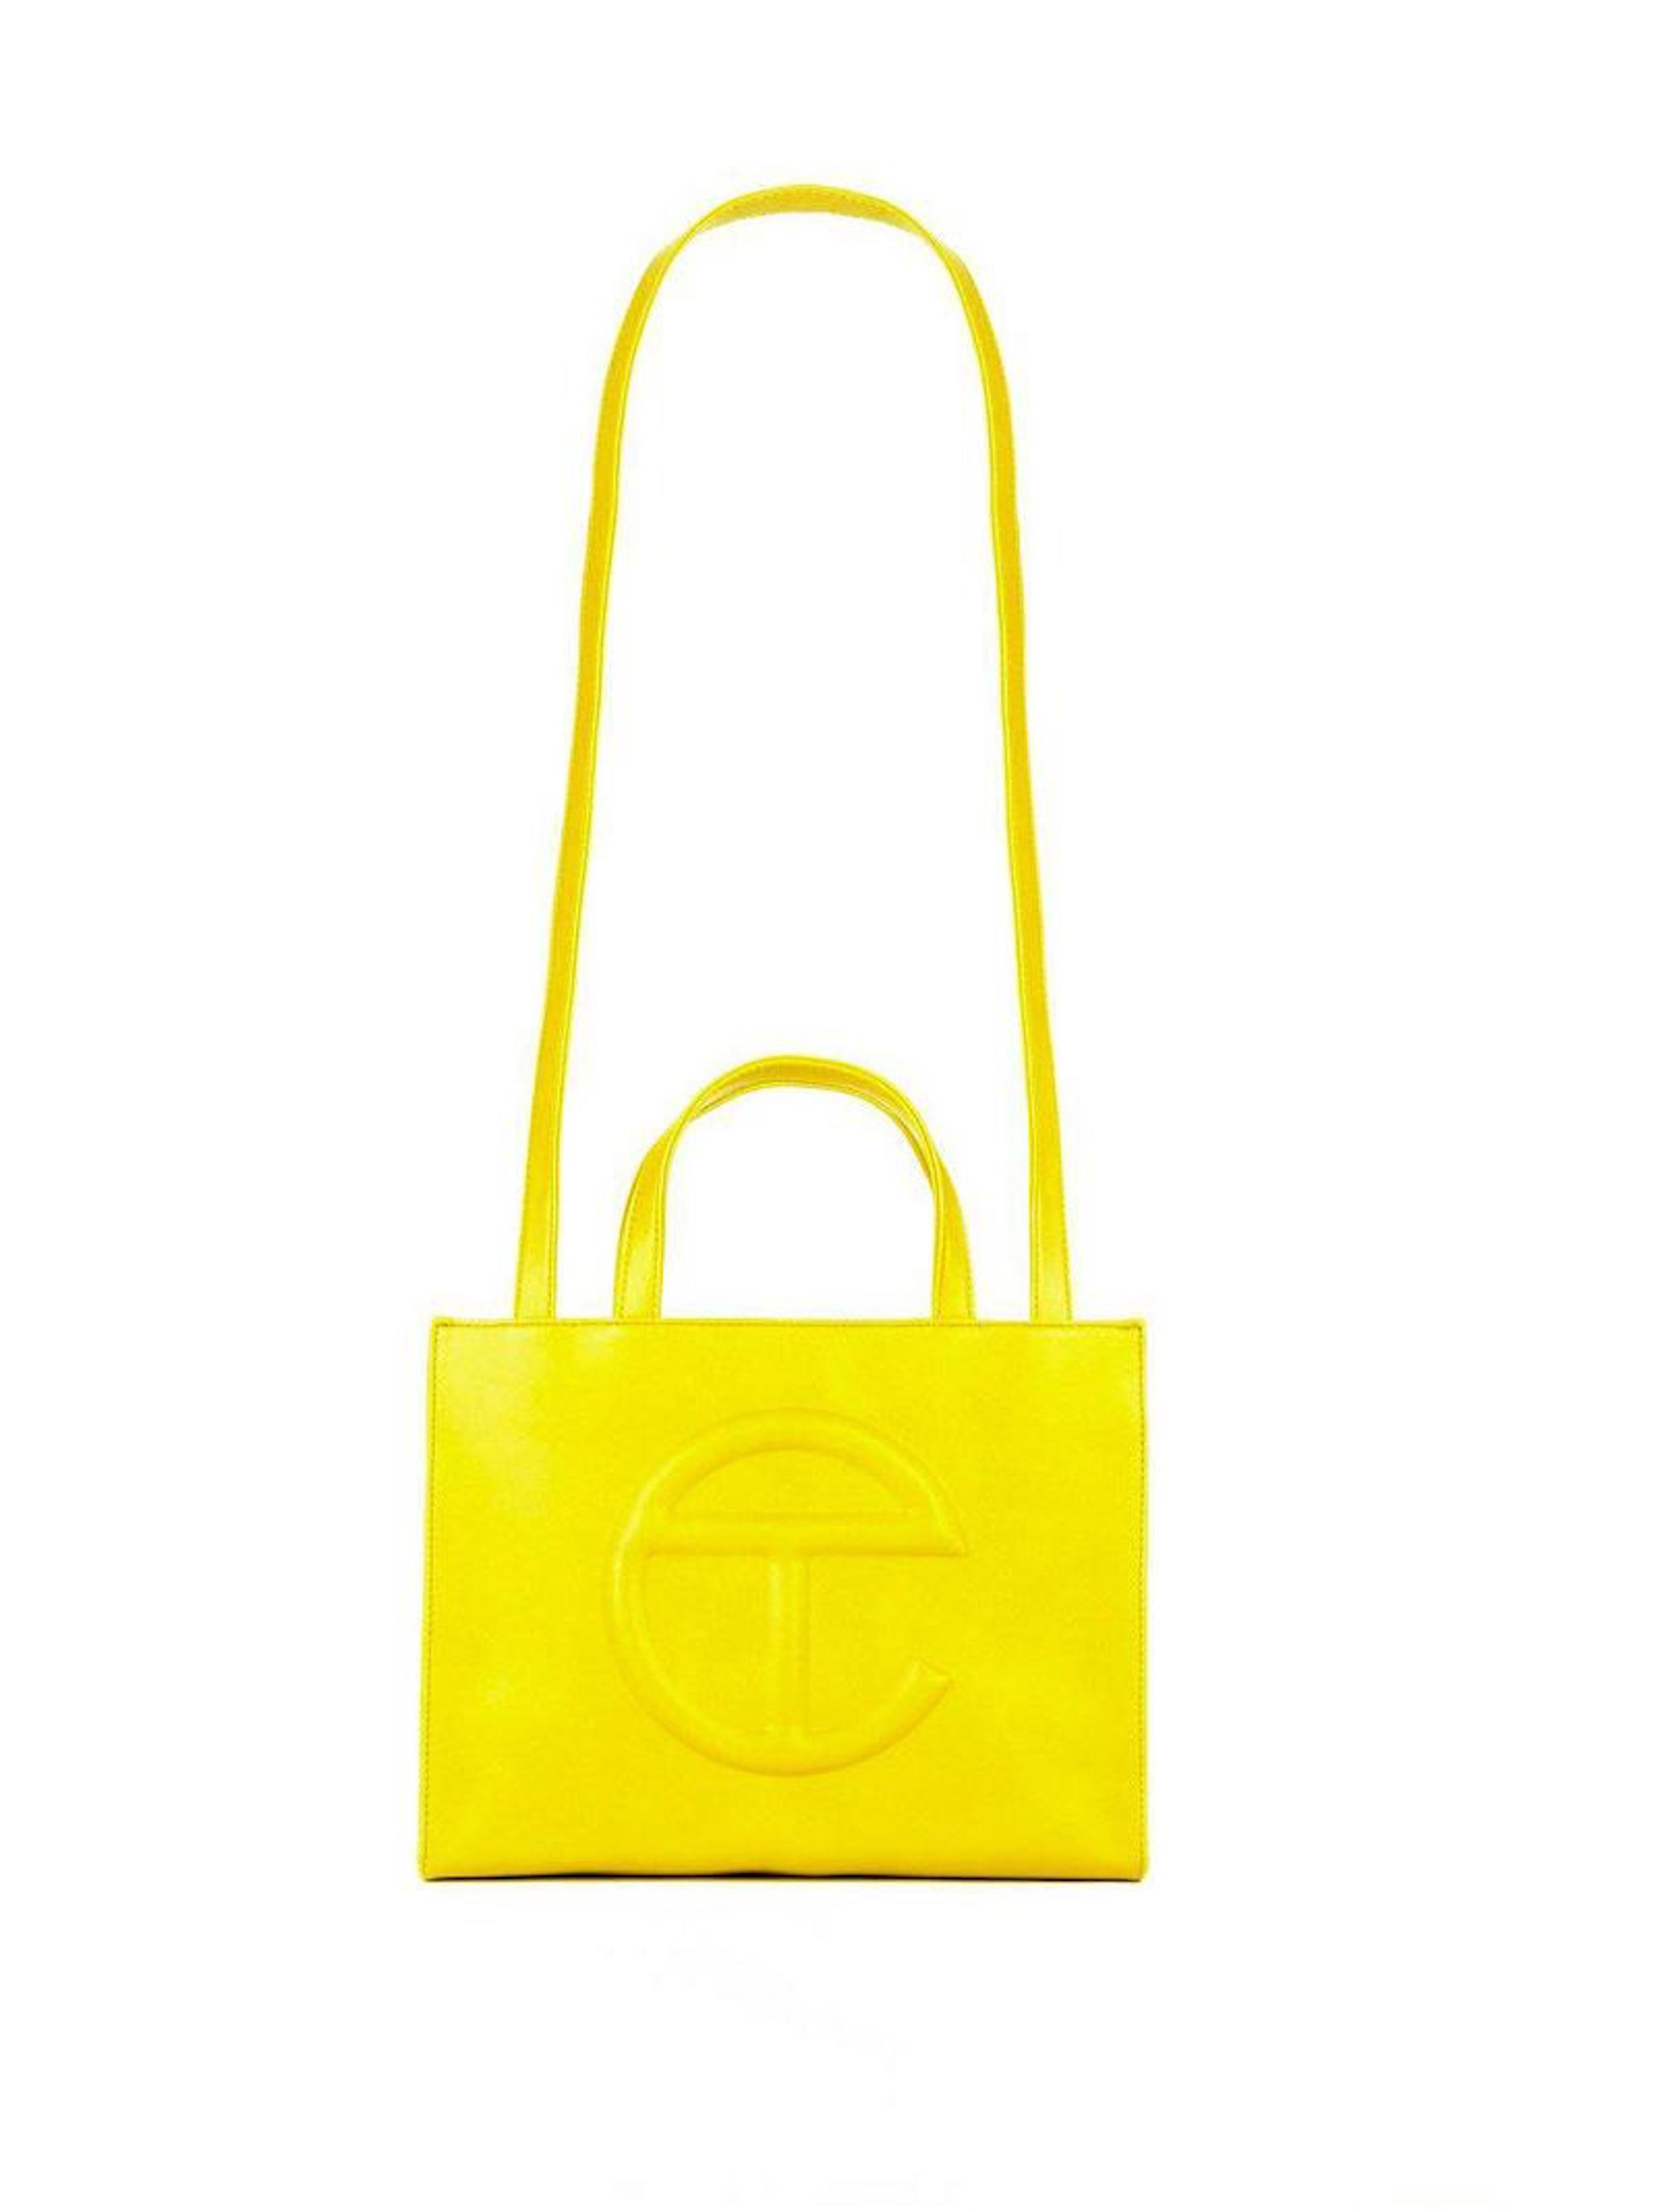 Telfar Yellow Shopping Bag